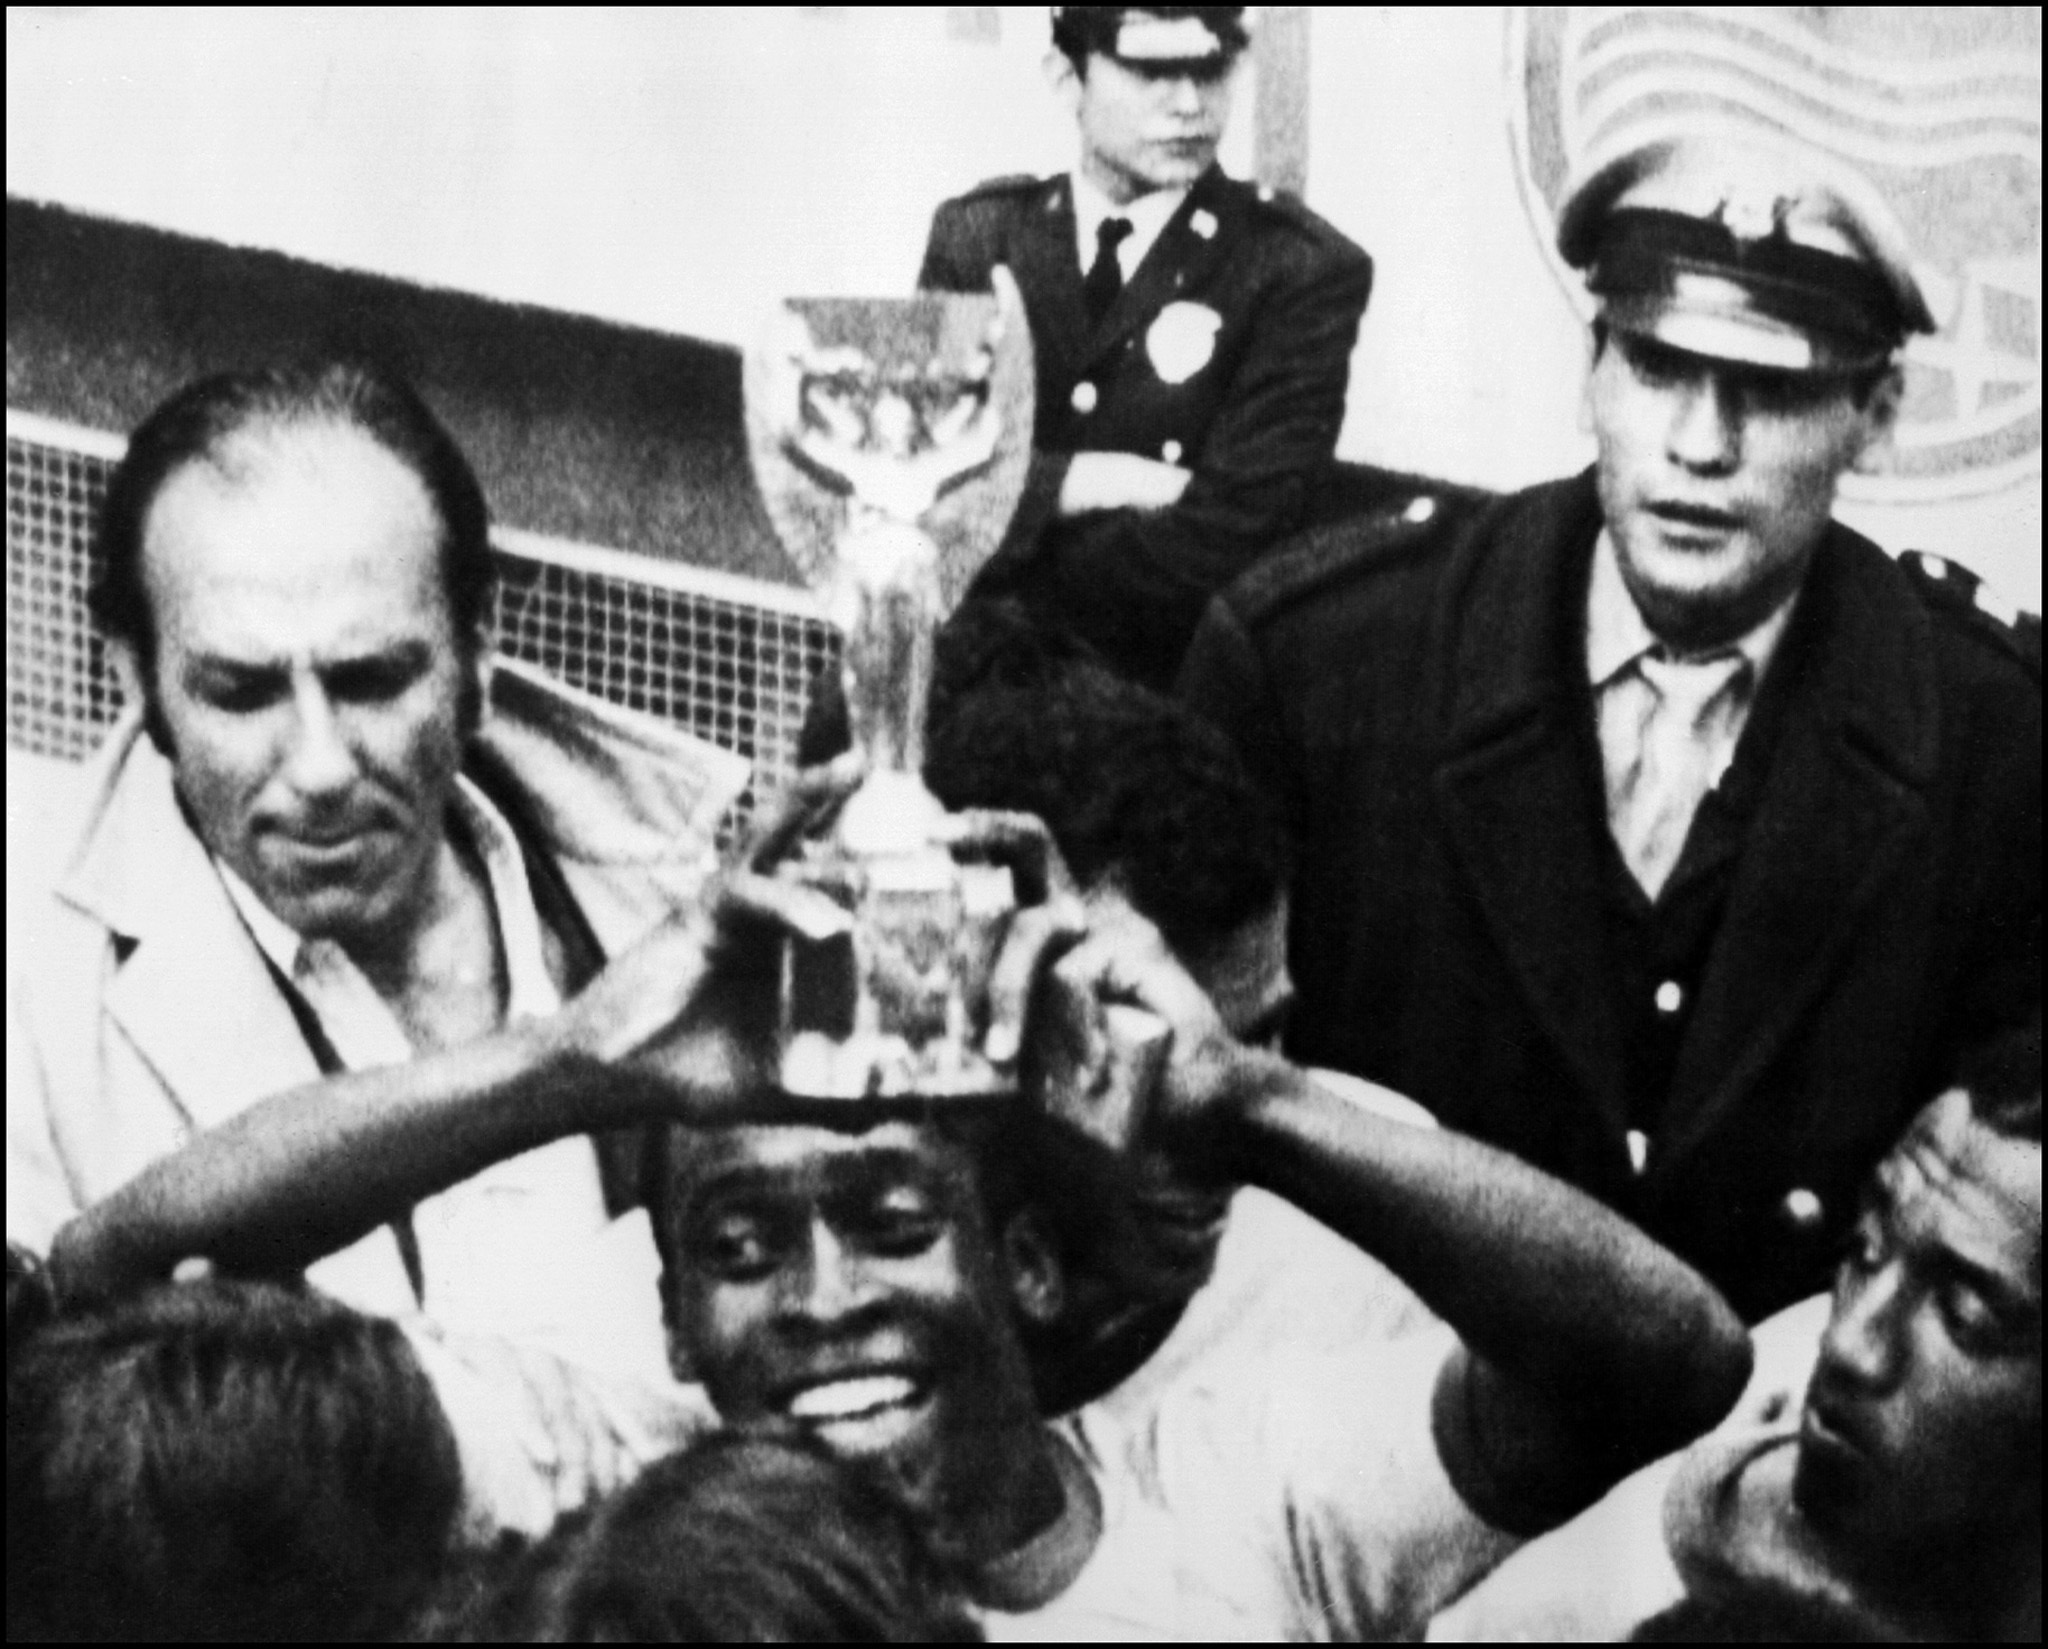 (FILES) In this file photo taken on June 21, lt;HIT gt;1970 lt;/HIT gt; Brazilian forward Pelé smiles as he holds aloft the Jules Rimet lt;HIT gt;Cup lt;/HIT gt; after lt;HIT gt;Brazil lt;/HIT gt; beat Italy 4-1 in the lt;HIT gt;World lt;/HIT gt; lt;HIT gt;Cup lt;/HIT gt; final in Mexico City. - Fifty years ago this month, modern football was born in Mexico, kicking, yelling and live in vibrant colour for a global audience. This weekend marks the anniversary of the quarterfinals as a star-studded cast played an increasingly thrilling series of knockout games which built to a dazzling final as the first colour lt;HIT gt;World lt;/HIT gt; lt;HIT gt;Cup lt;/HIT gt; ended with an unparalleled display by a technicolour team. (Photo by STF / AFP)